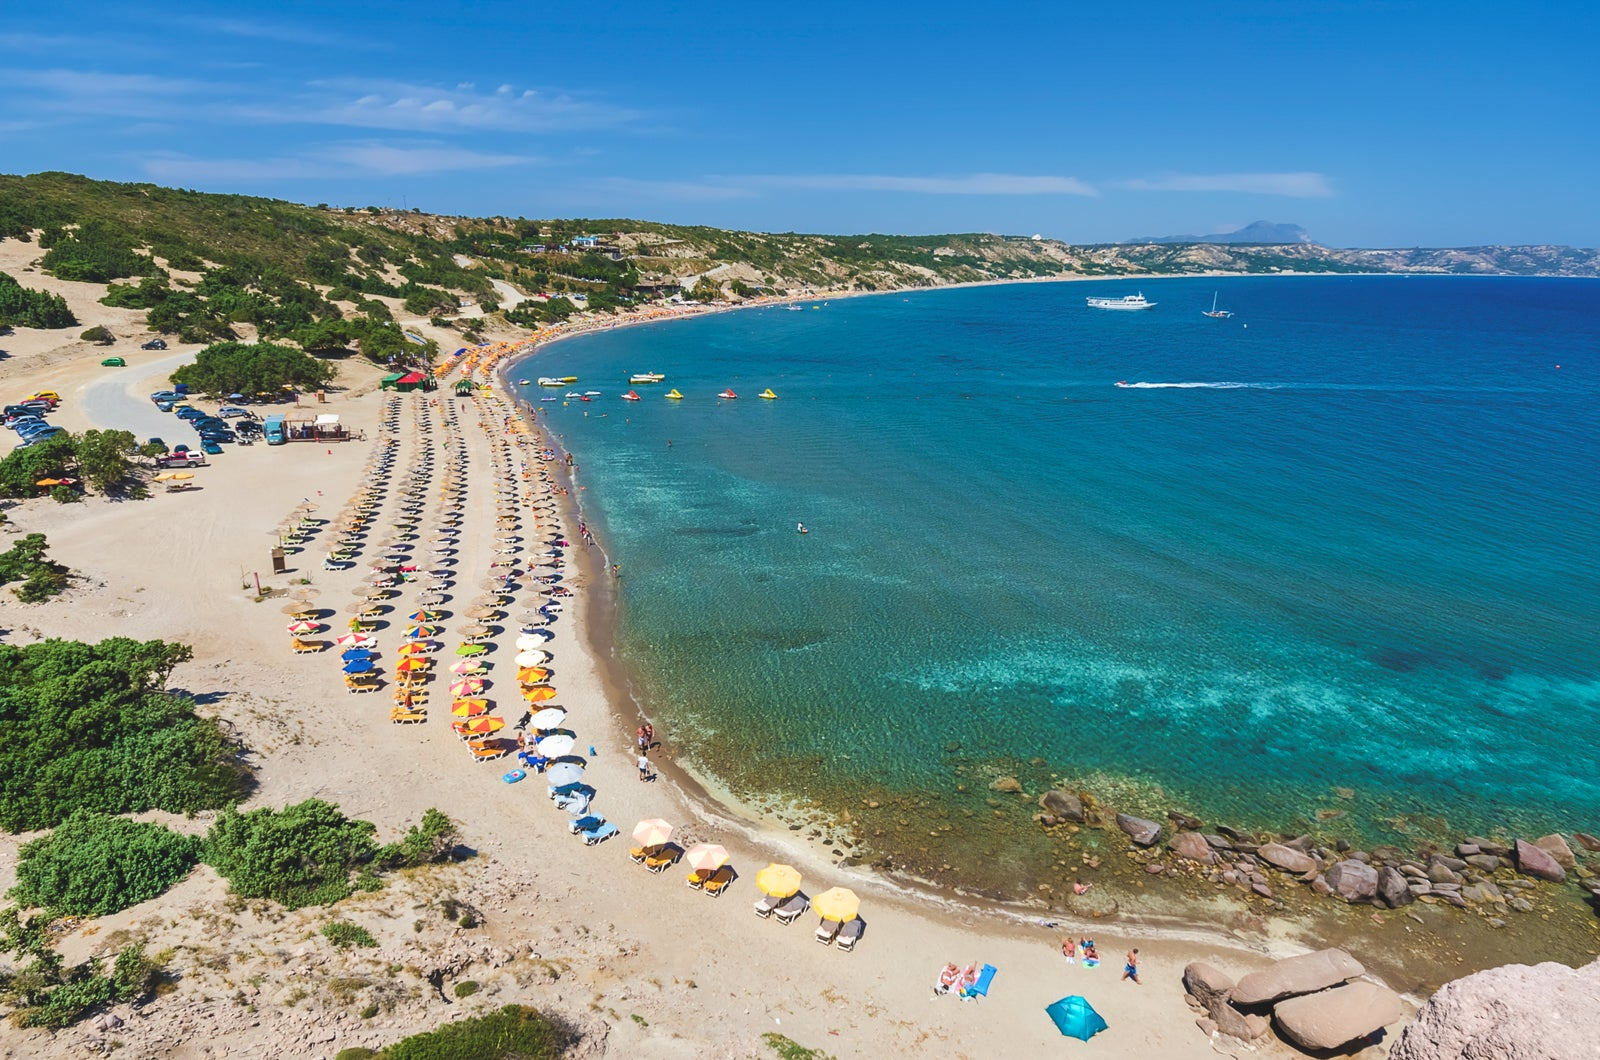 Greece has reopened - but here's why you may want to wait to go - The Points Guy